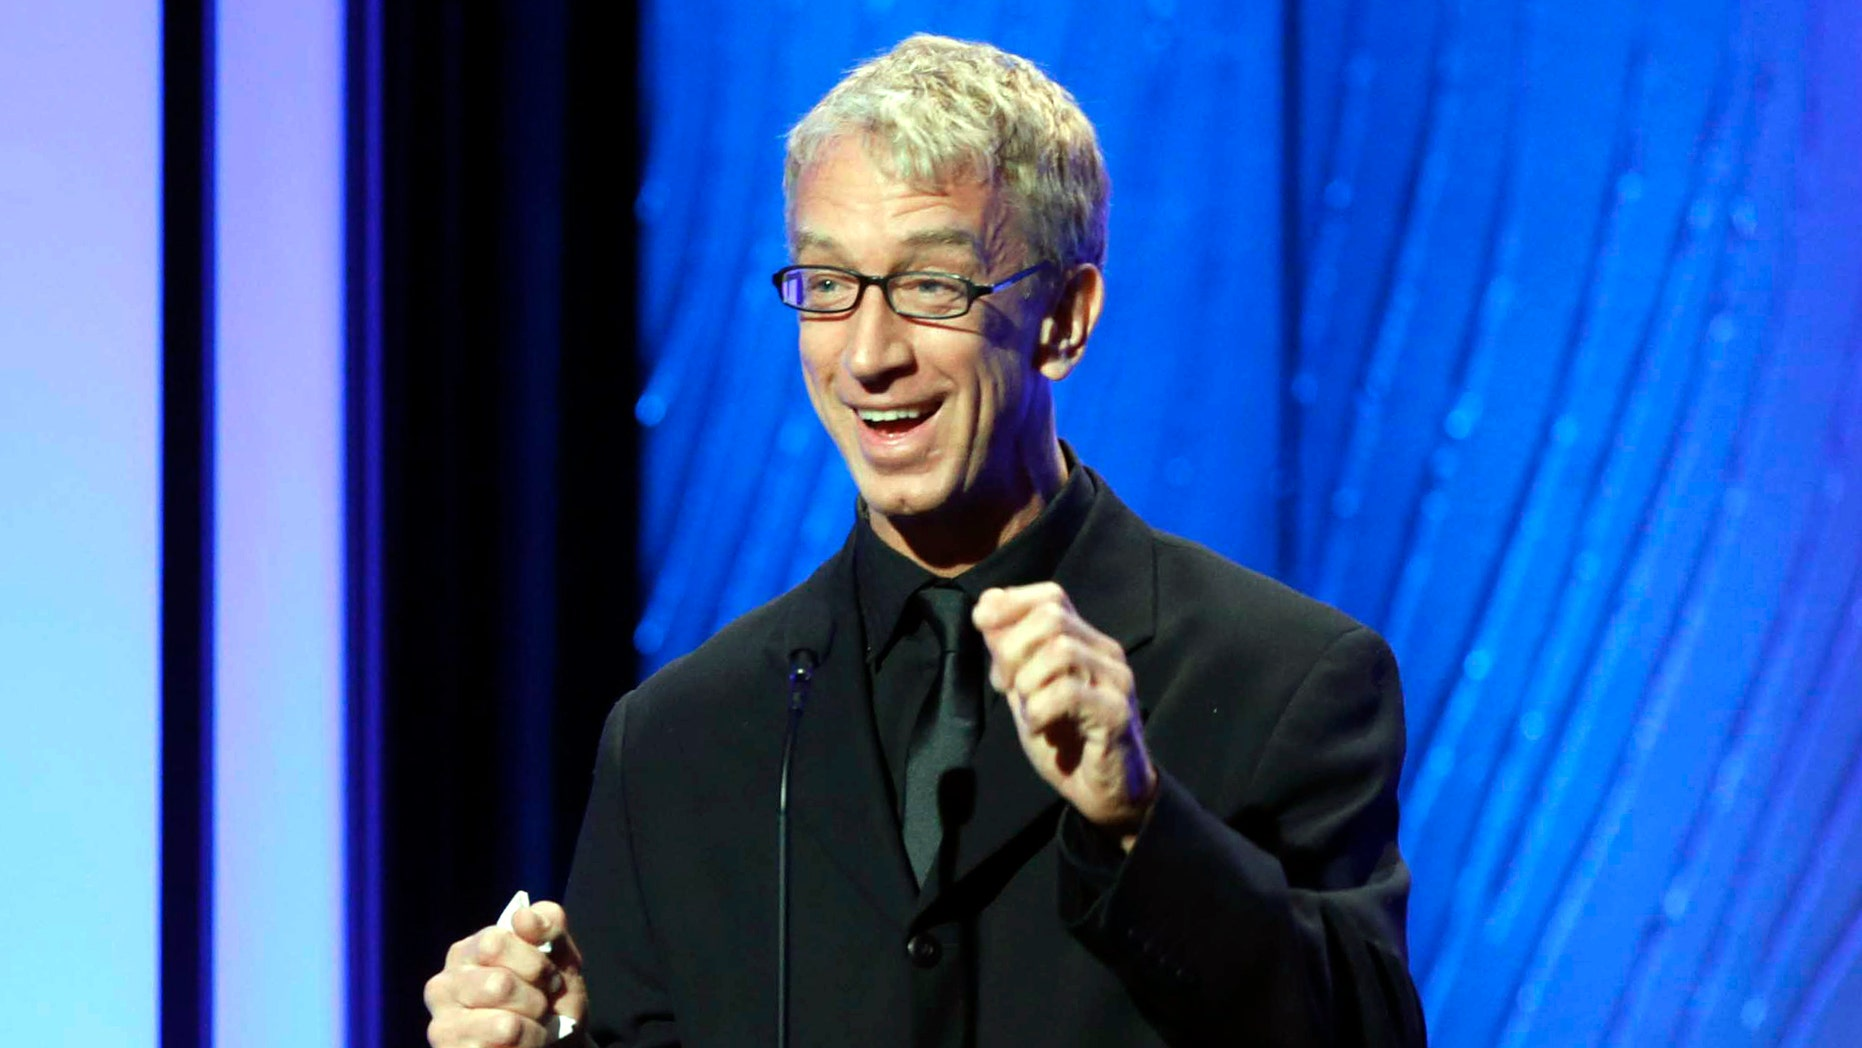 No stranger to controversy: Andy Dick was fired from two films for alleged sexual harassment.